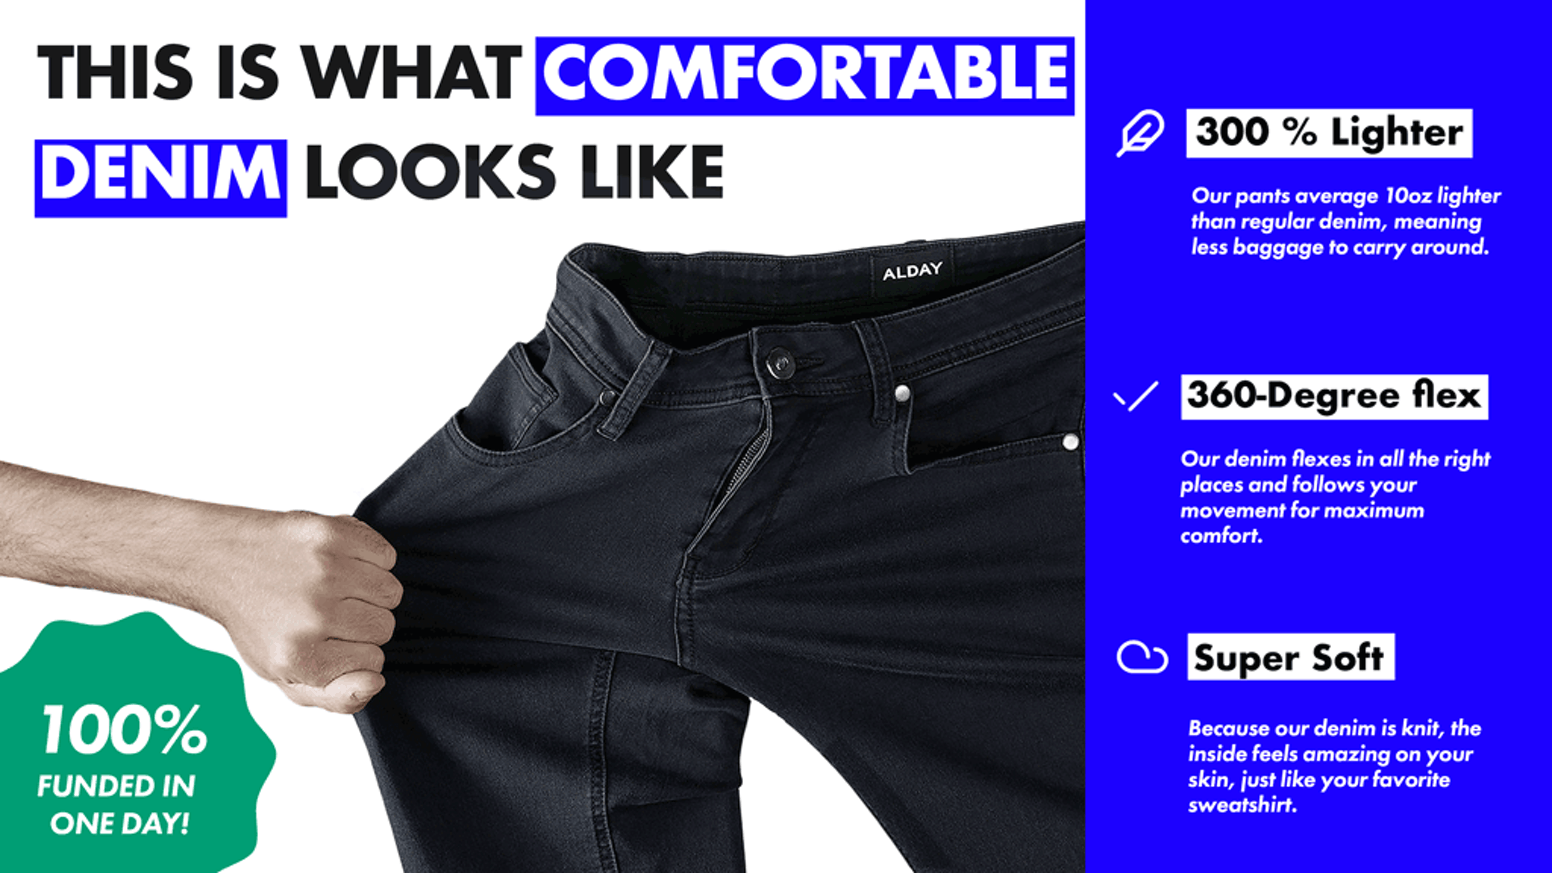 We've combined the best features from both sweats and denim to create a super lightweight, go-anywhere pant to fit every guy's needs.